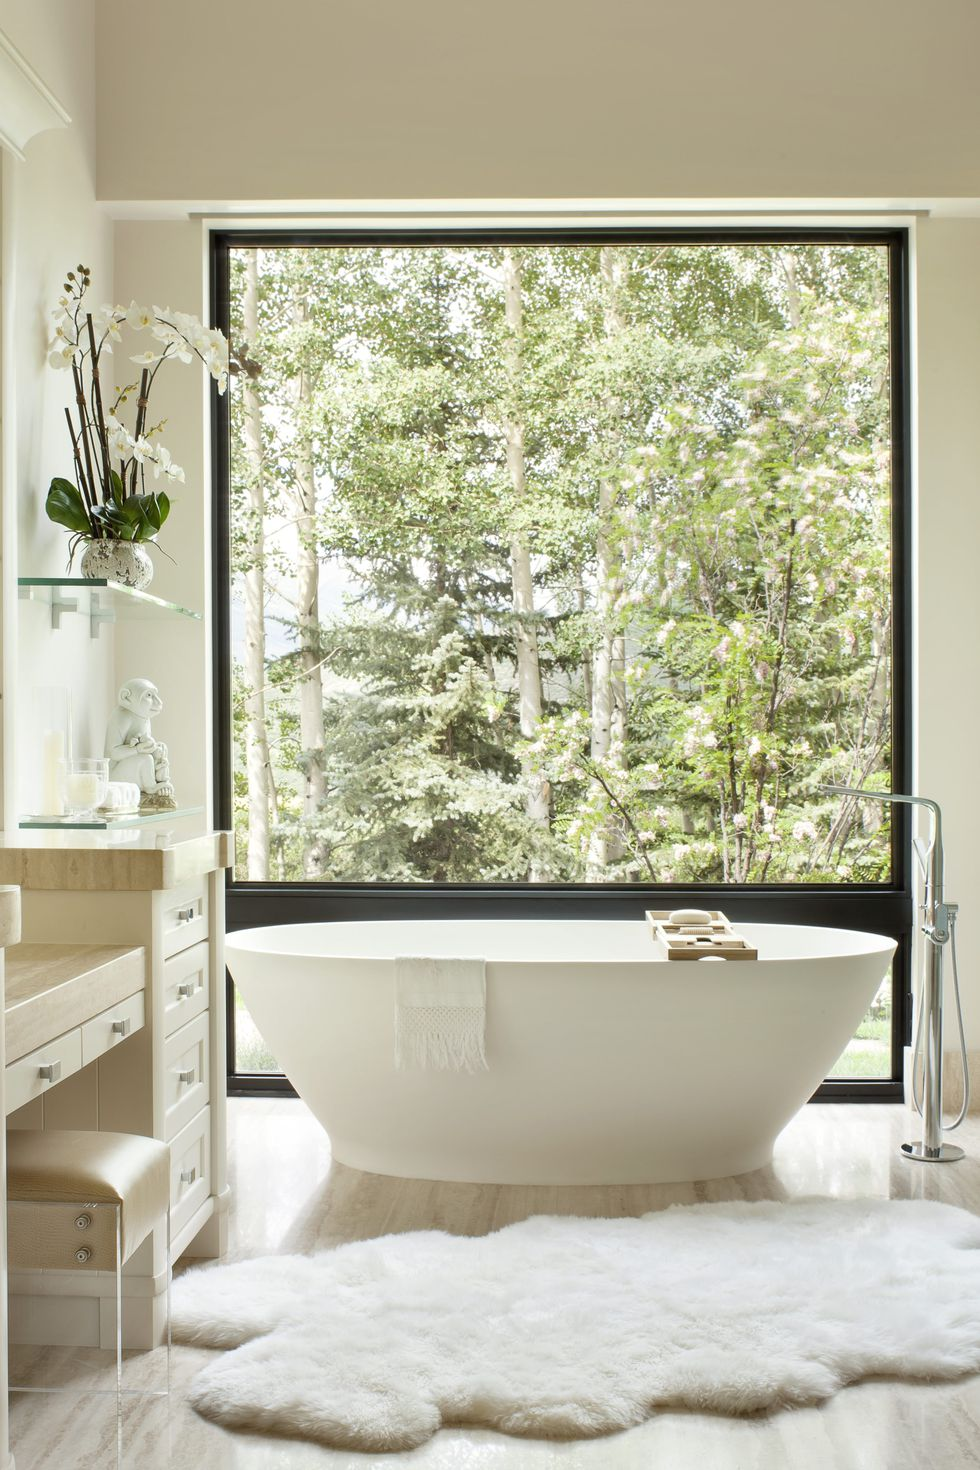 These Luxurious Bathrooms With Curved Tubs Are Everything Dream Bathrooms Dream Bathroom Master Baths Luxury Bathroom